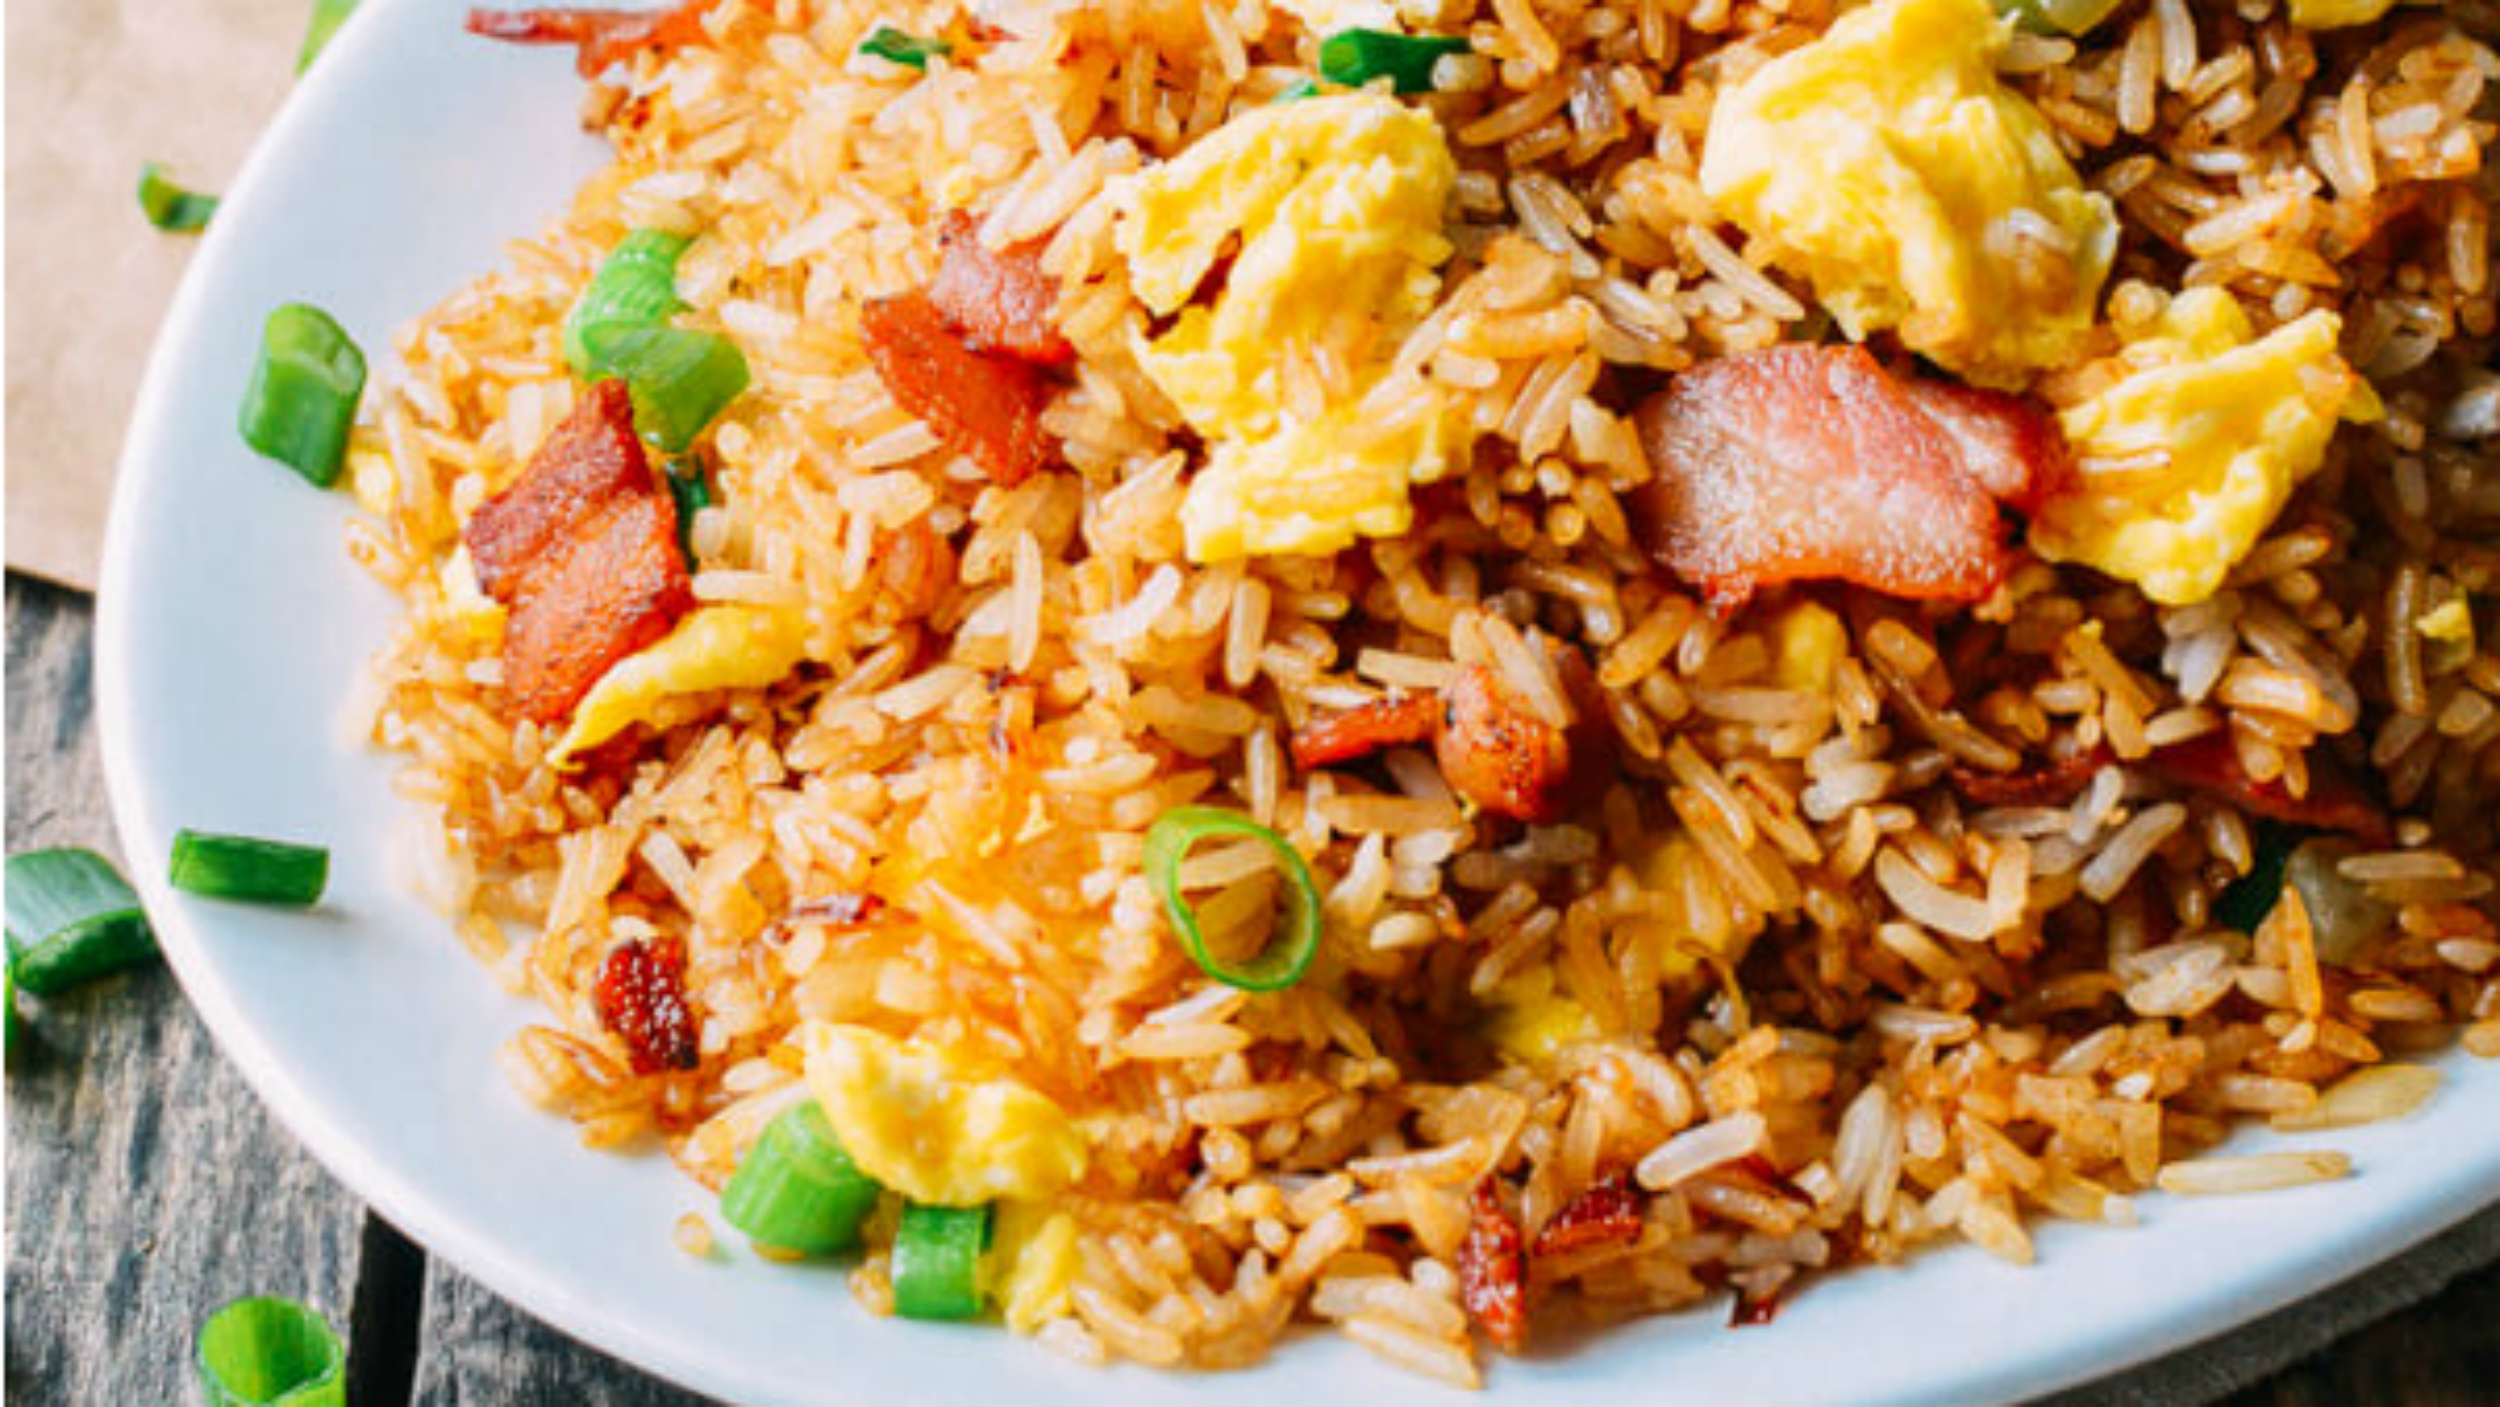 Takeout recipes at home: Make bacon and egg fried rice ...